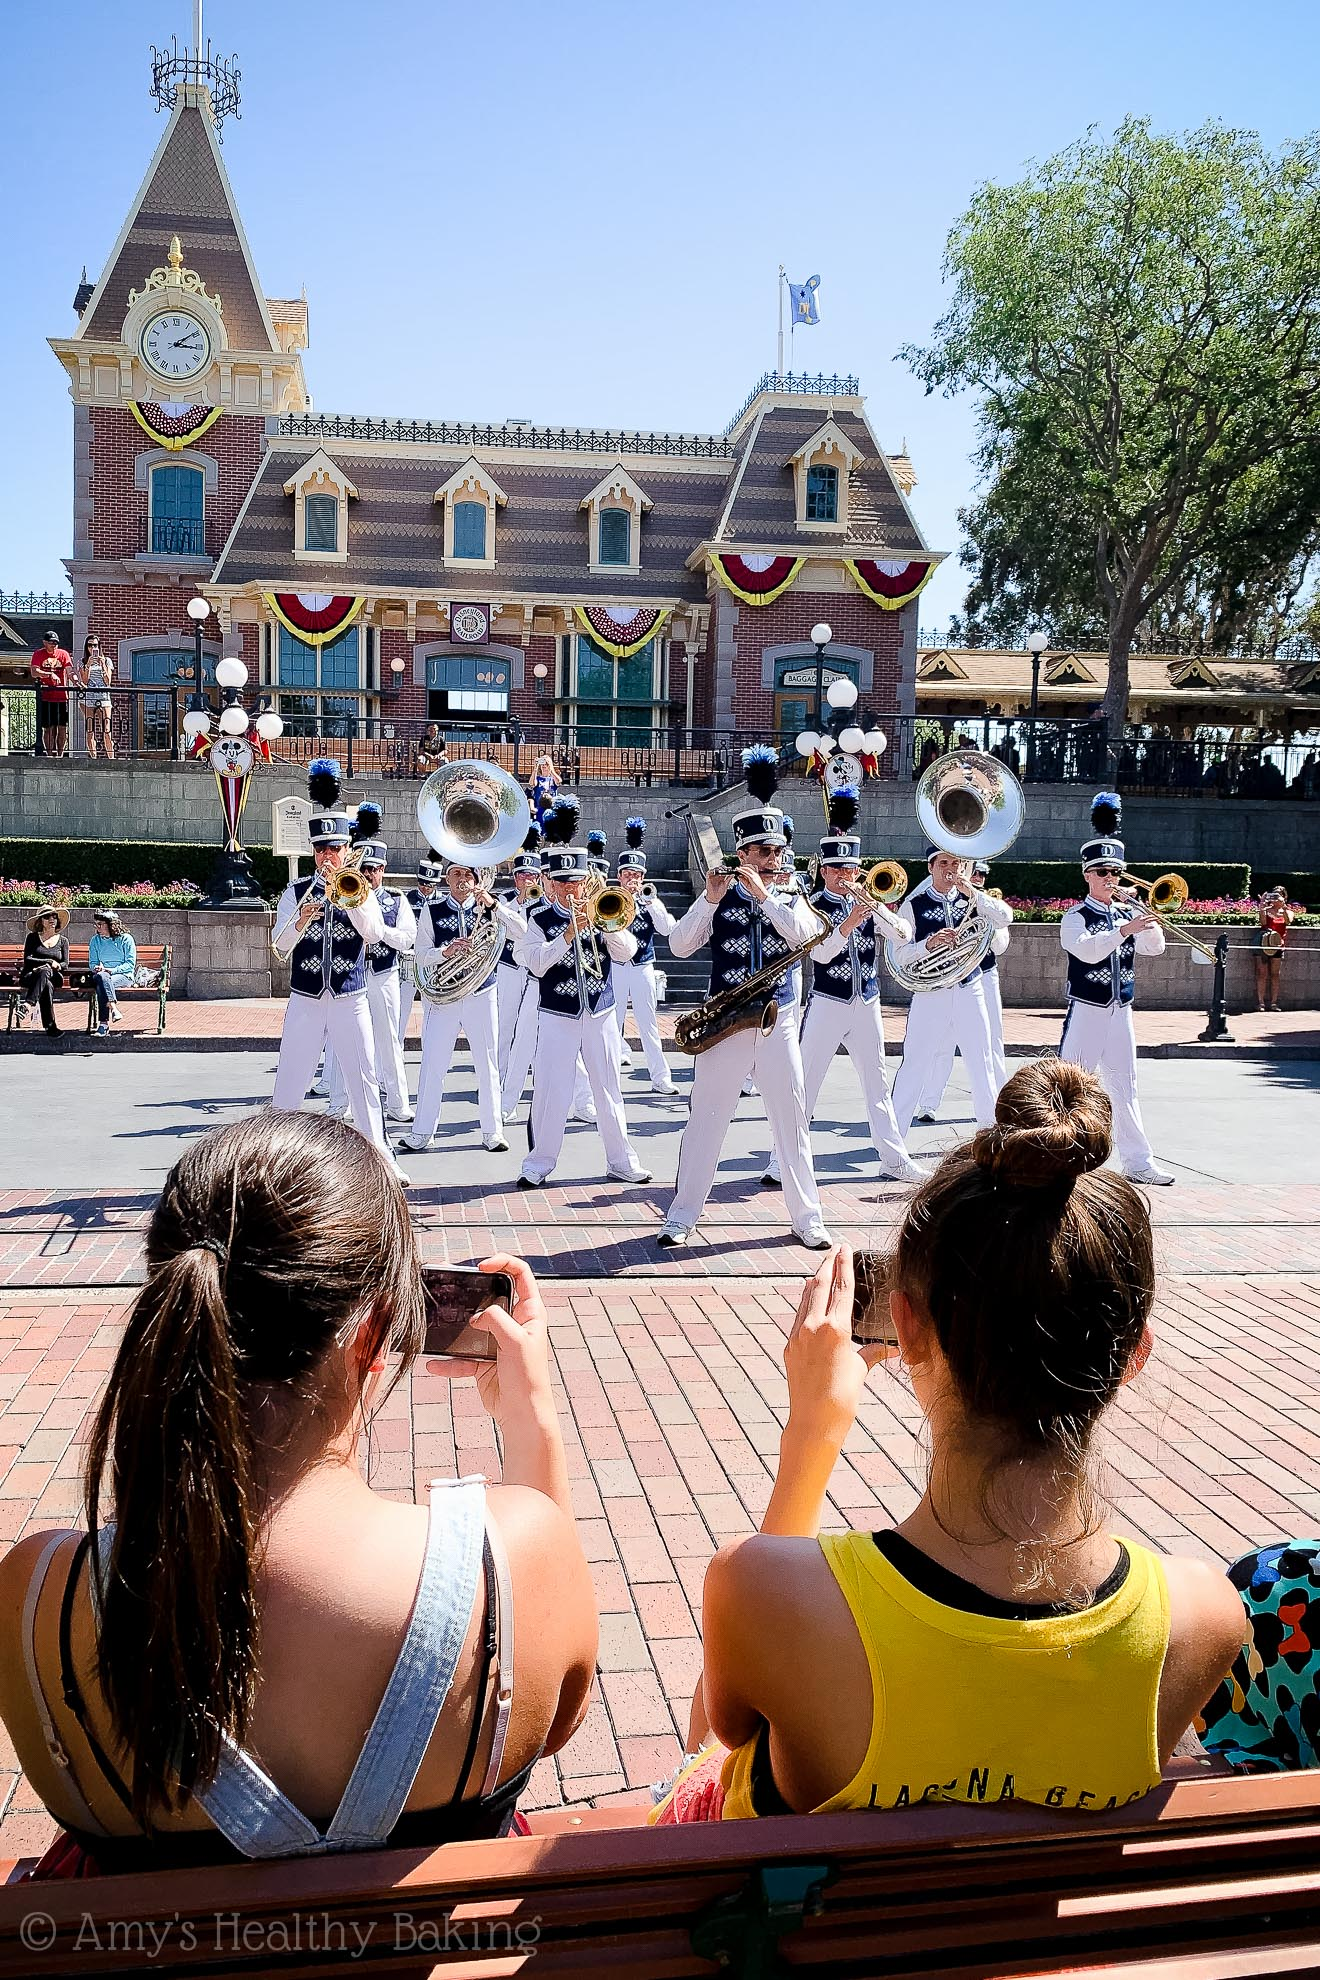 Disneyland Band performing on Main Street! In Anaheim, California